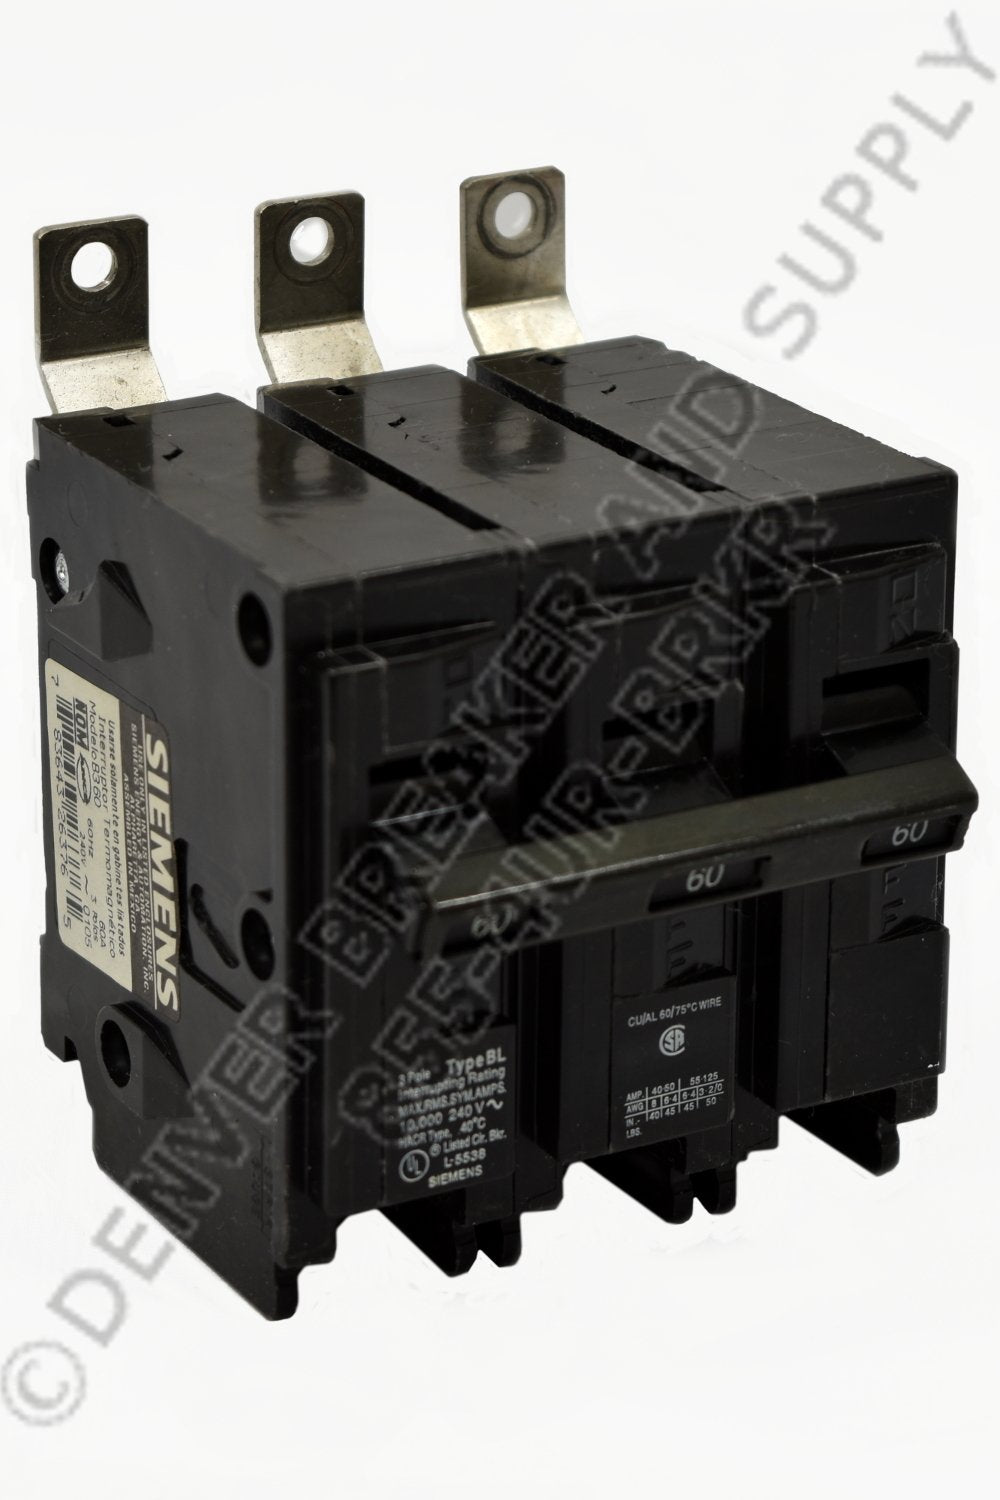 ITE BL345 Circuit Breakers